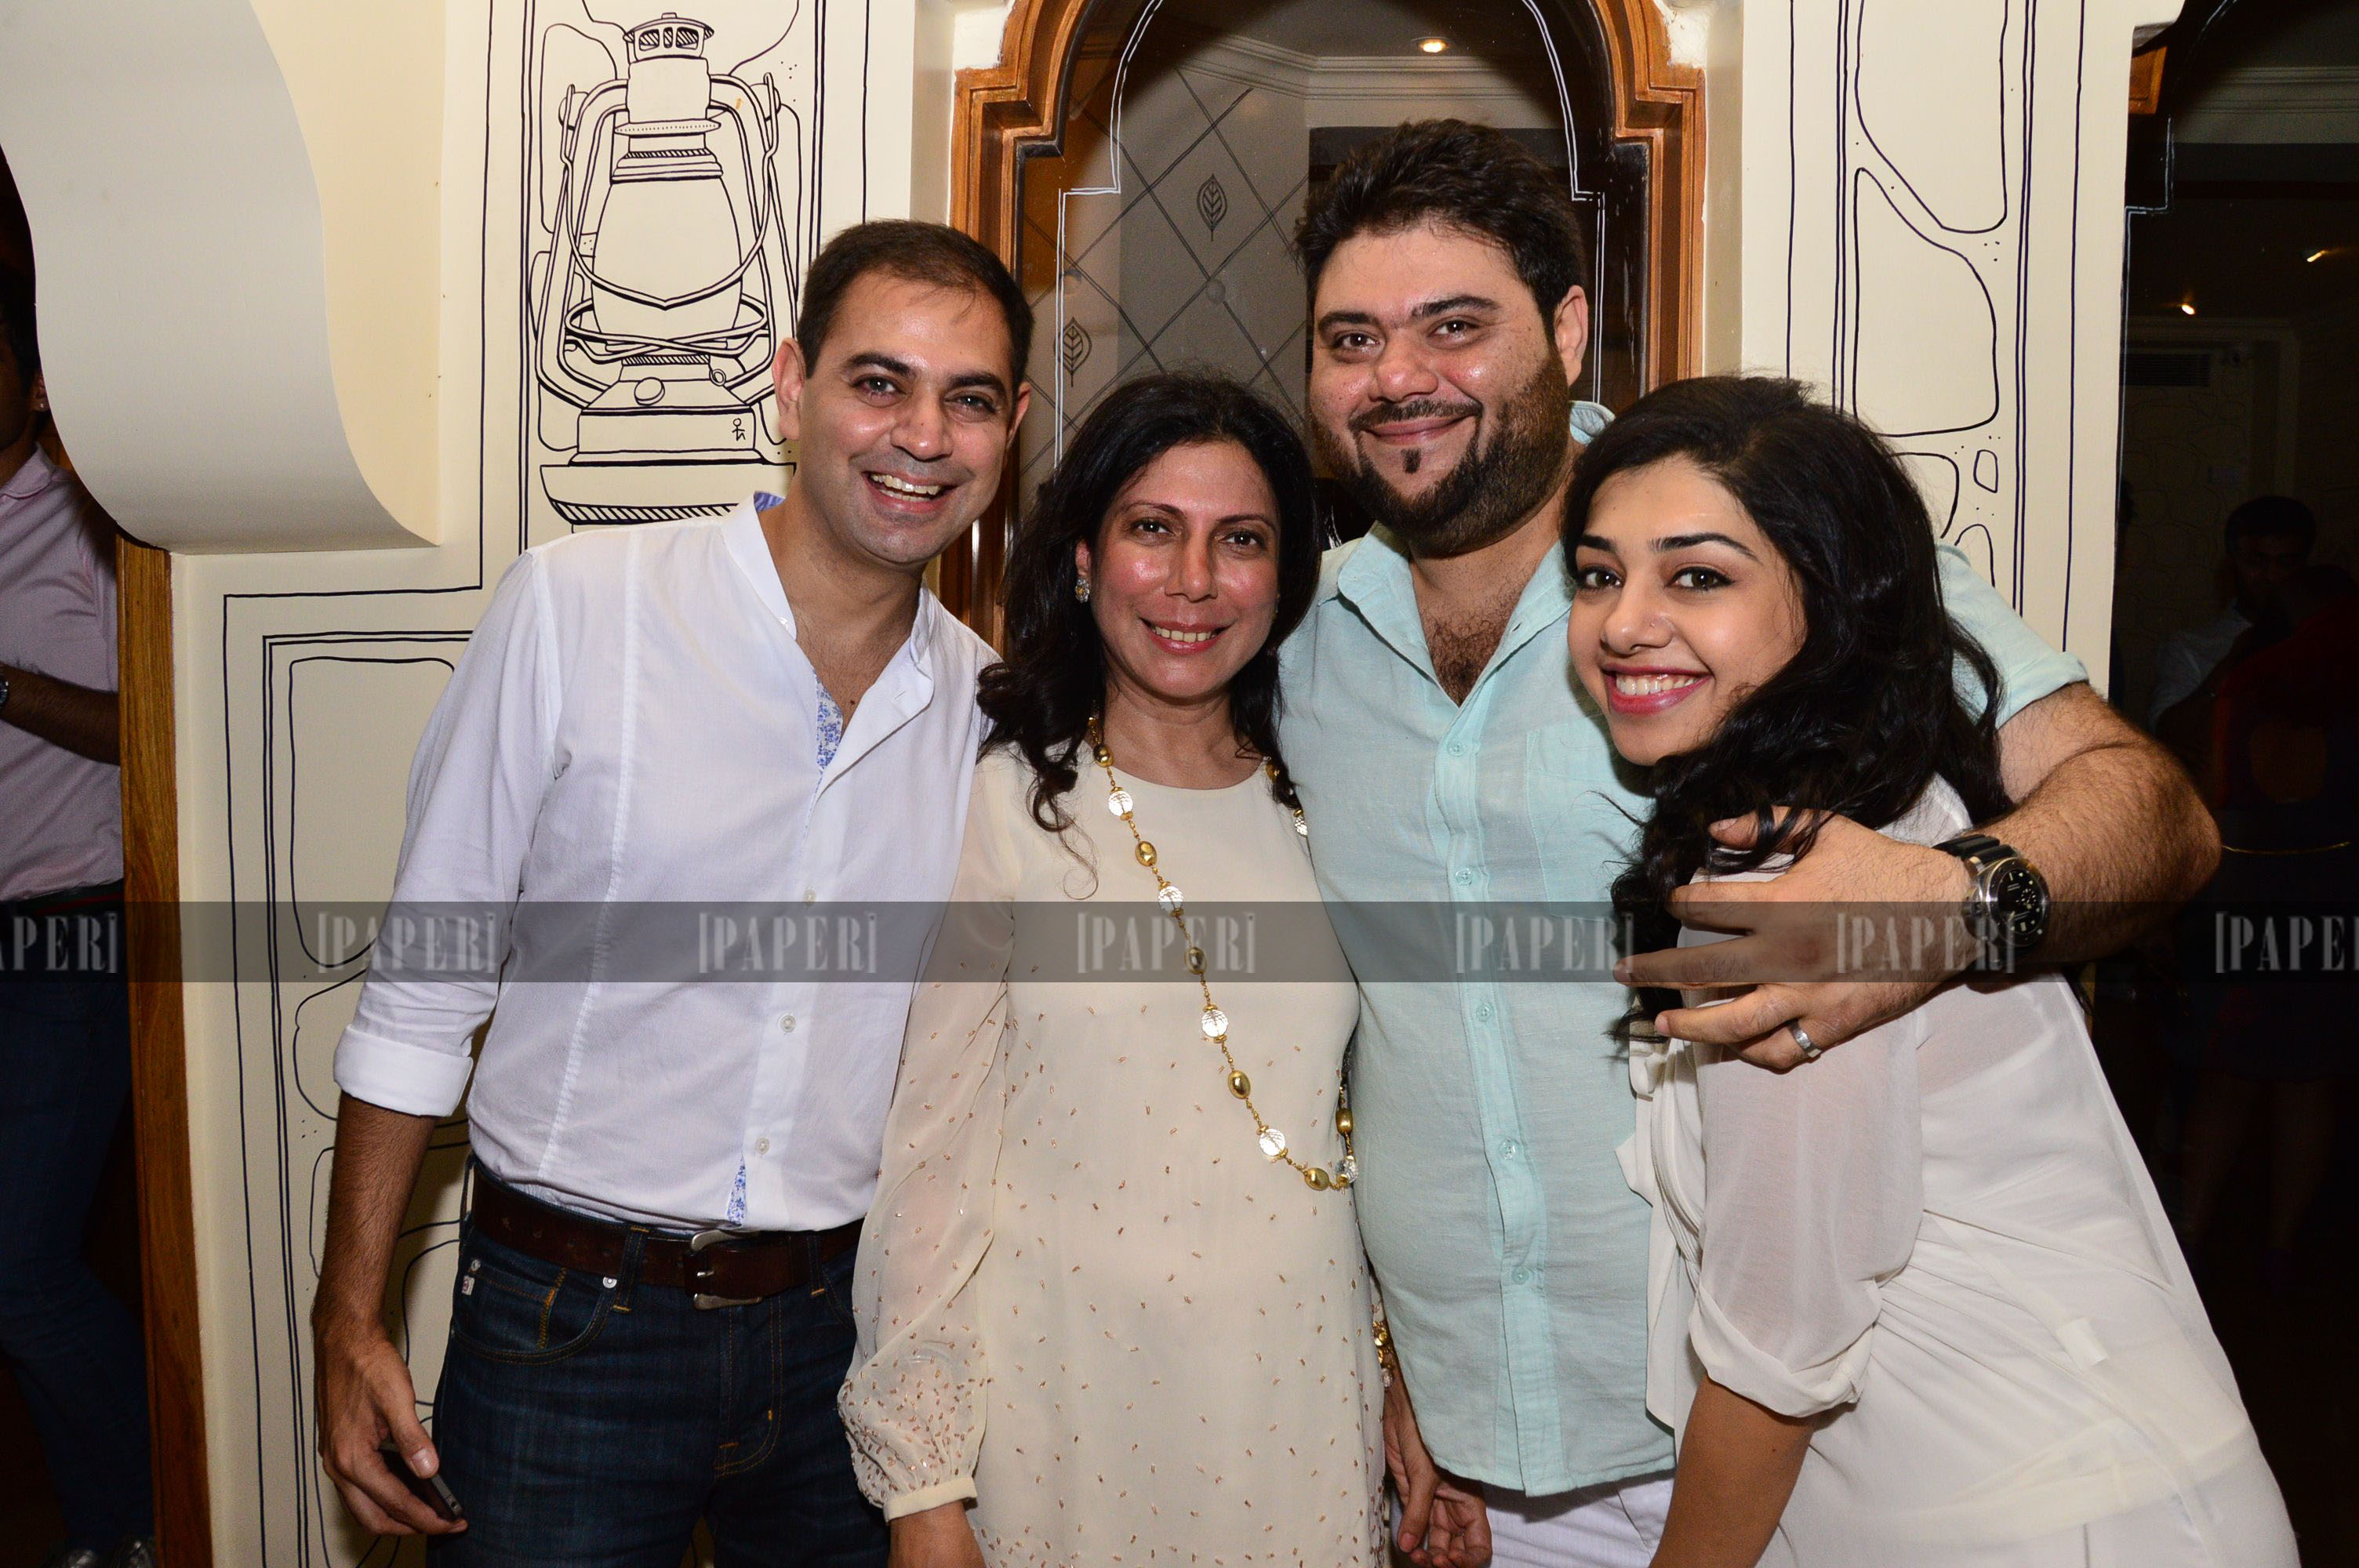 Riyaaz and Kiran Amlani with Harmeet and Sid Mathur